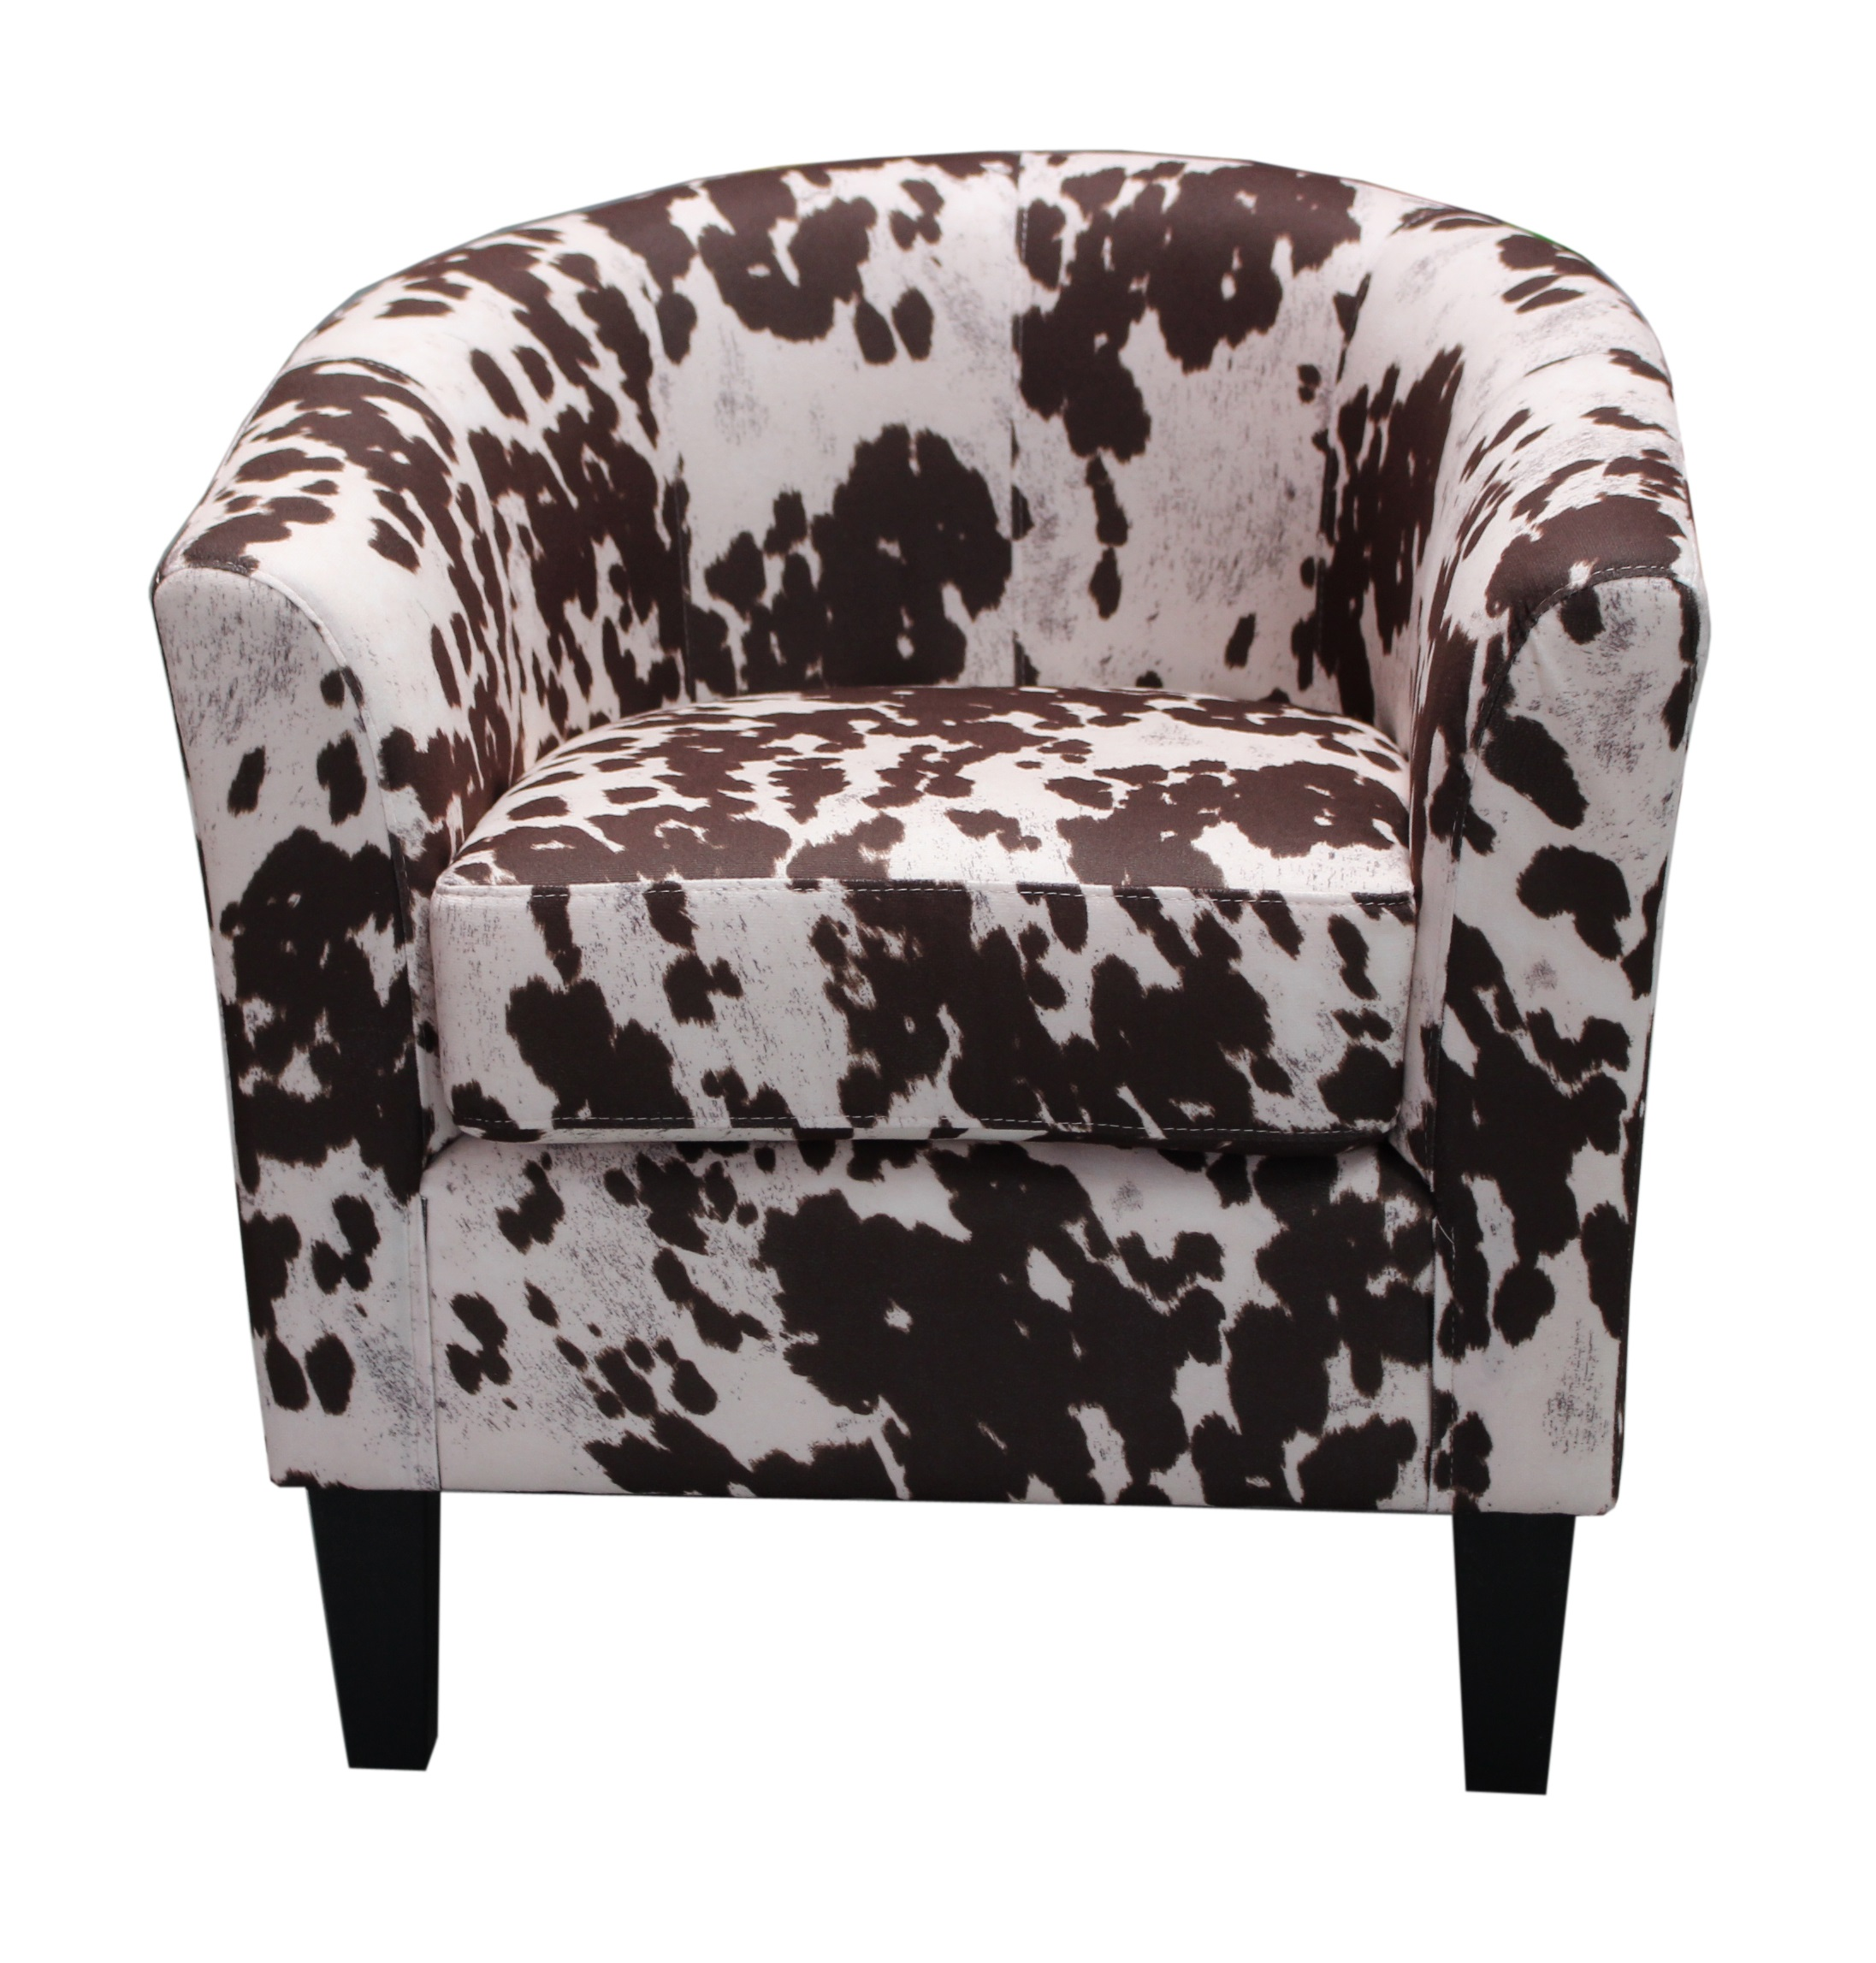 US Pride Furniture Contemporary Western Cowhide Print Upholstered Accent Chair